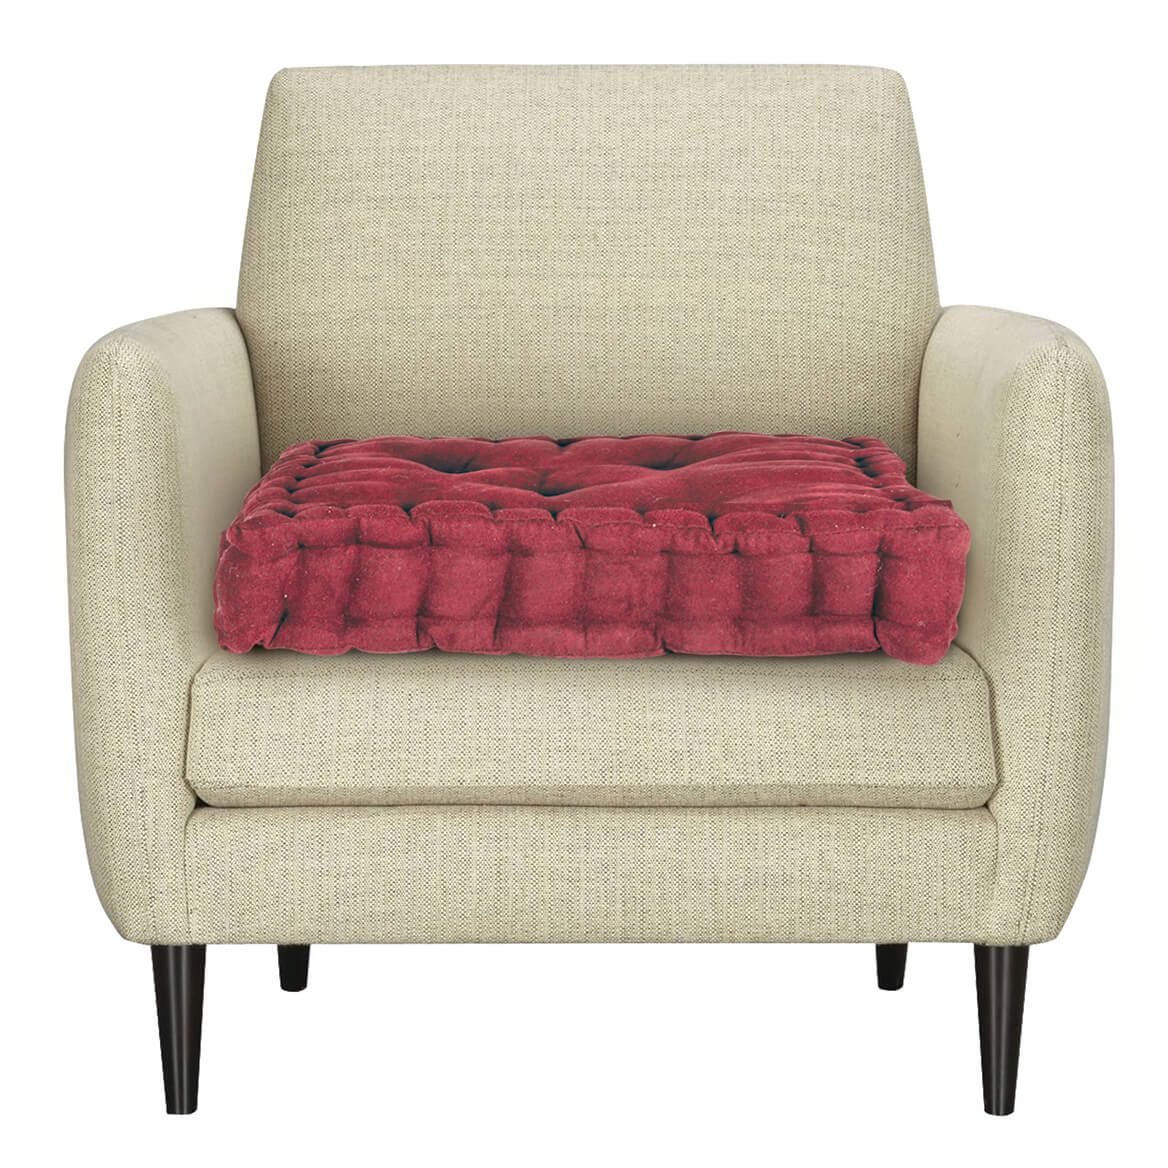 Tufted Booster Cushion-351789